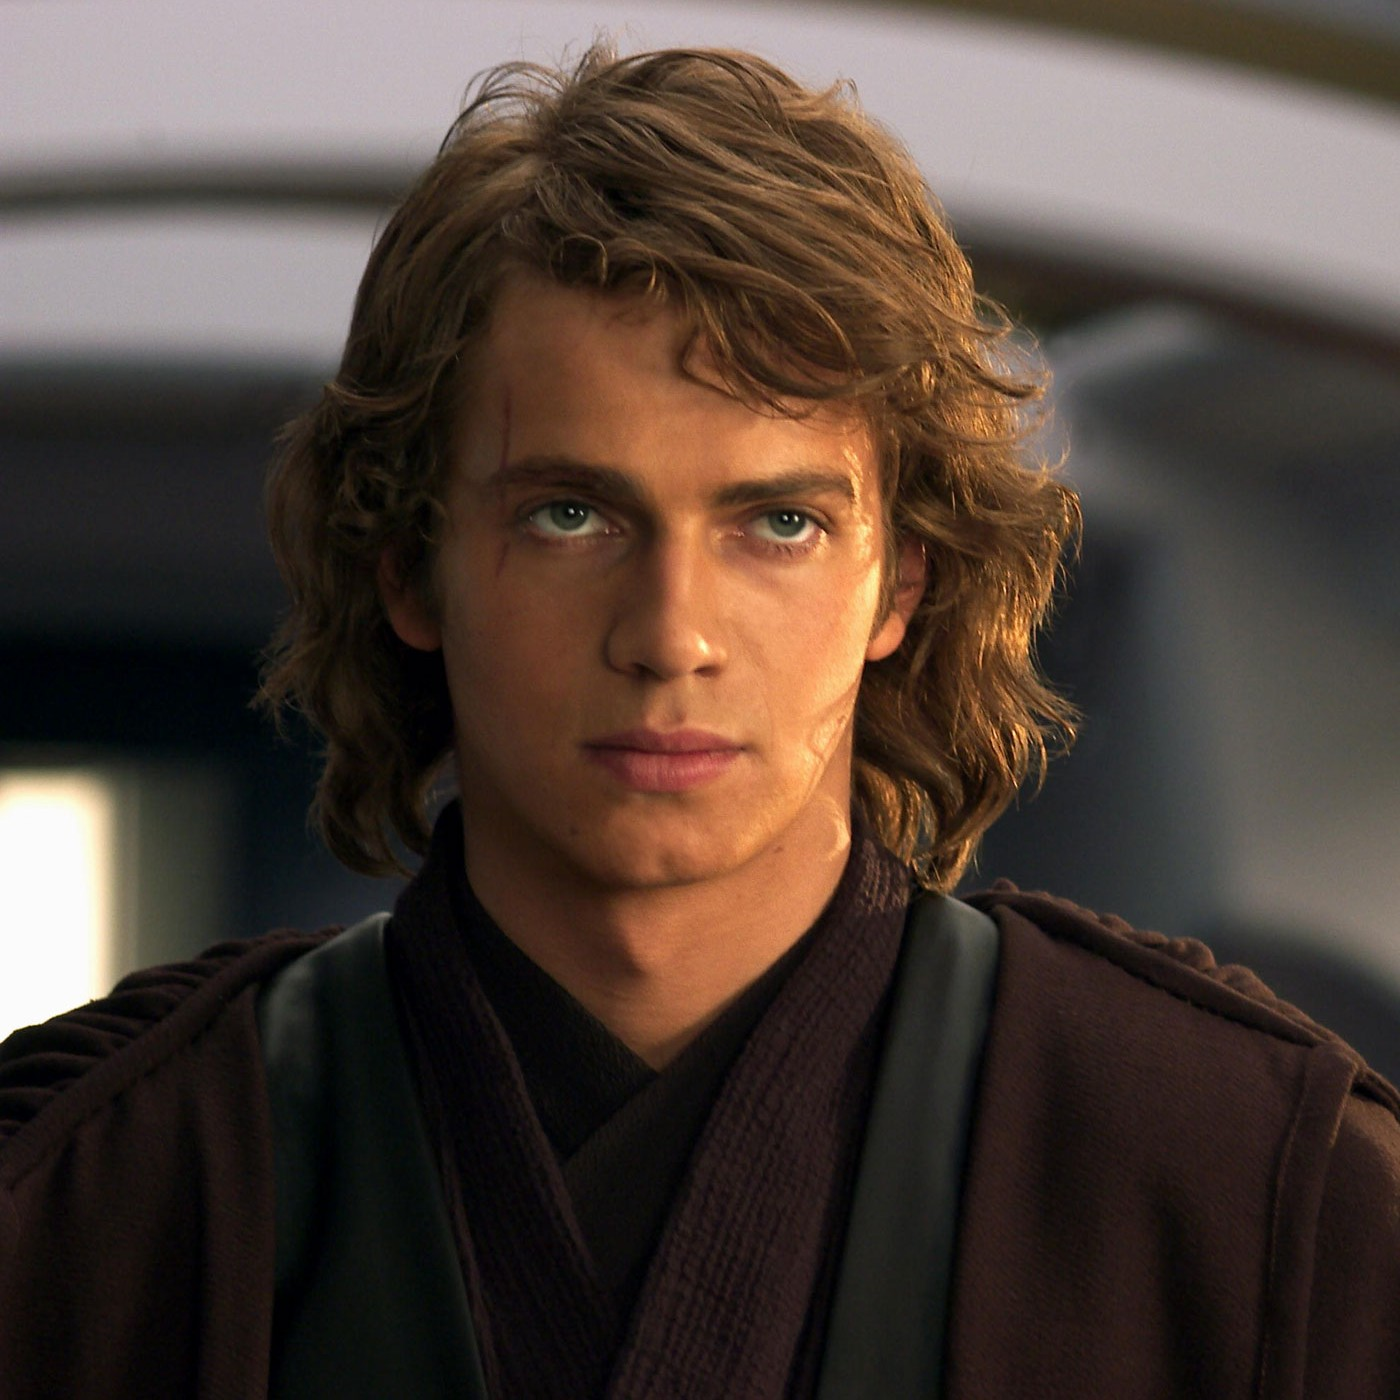 Hayden Christensen as Anakin Skywalker